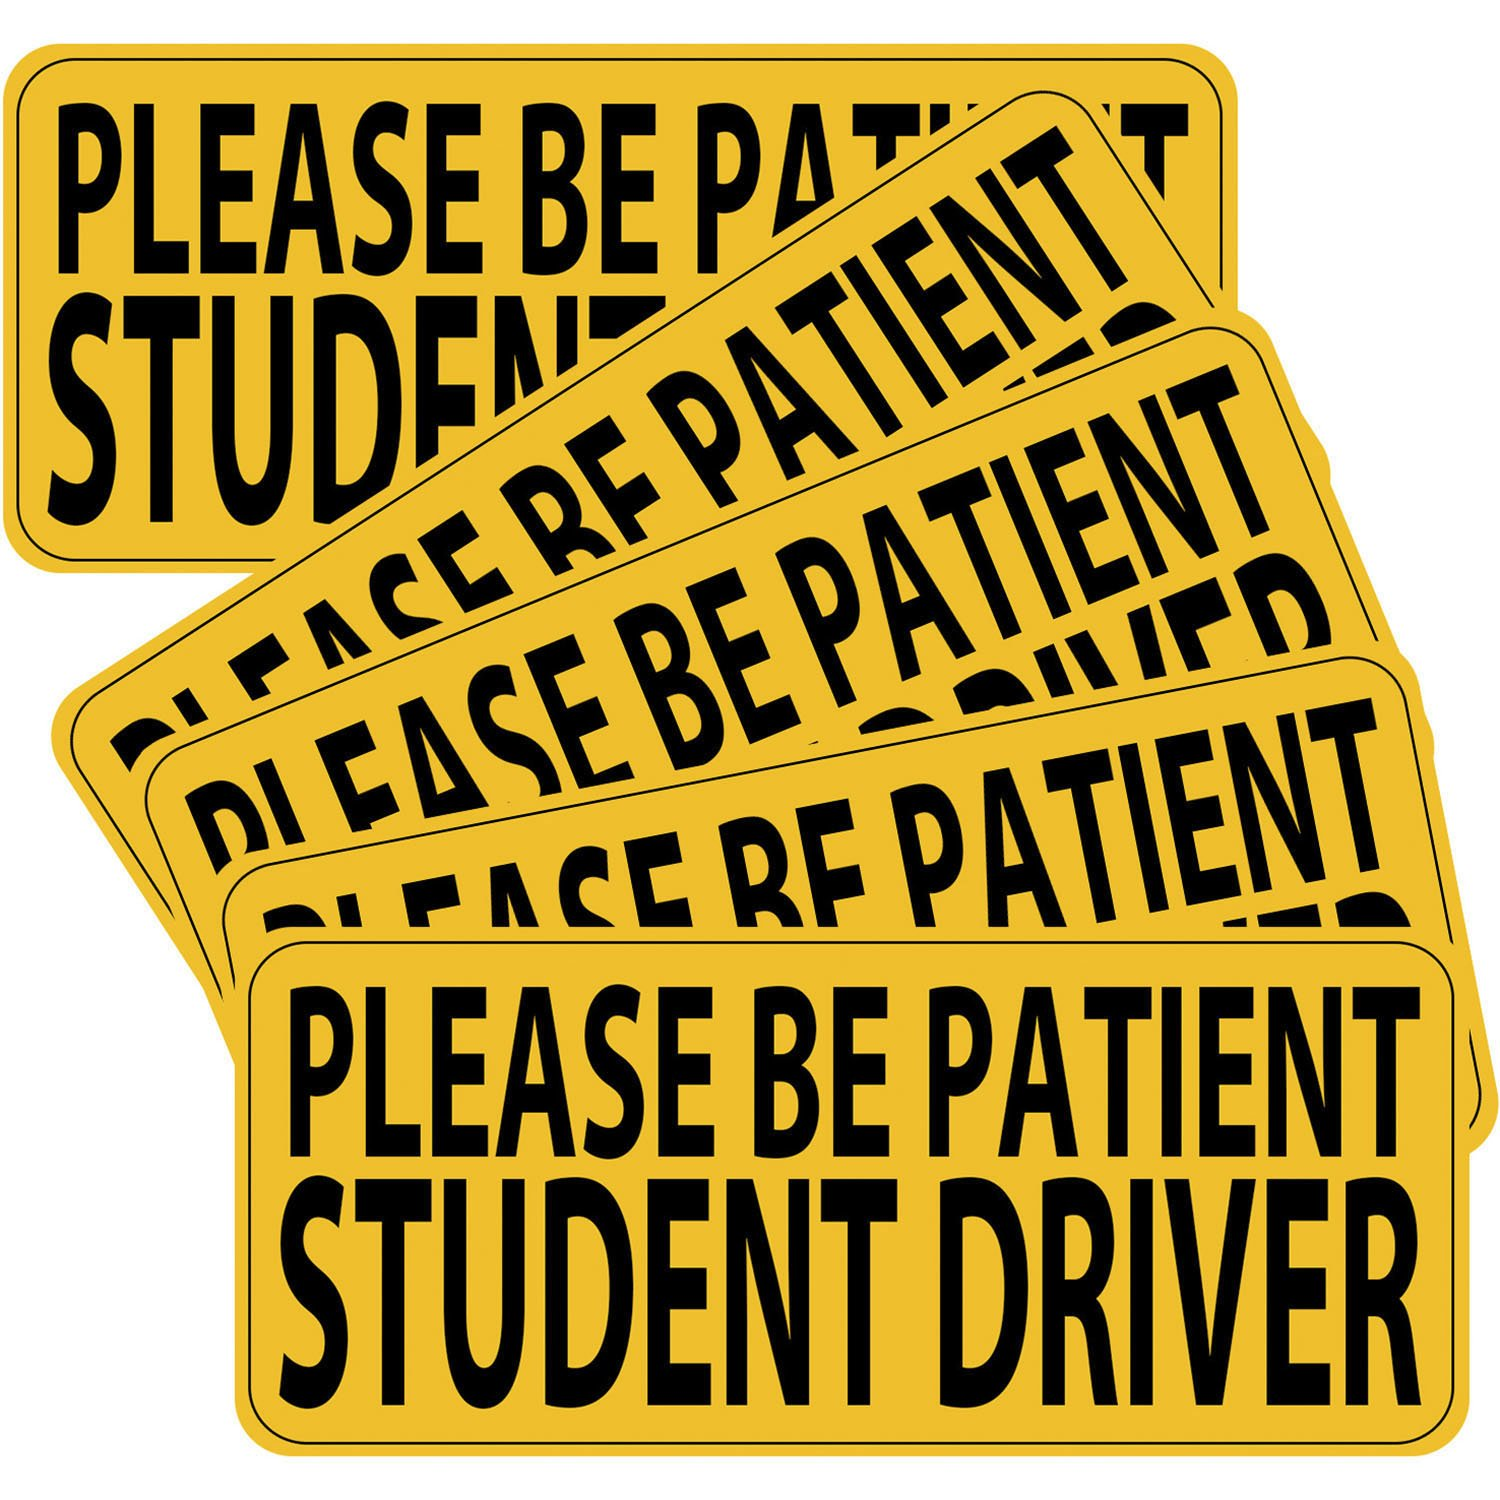 Hotop 5 Pack Student Driver Magnet Safety Sign Vehicle Bumper Magnet Decal 9 by 4 Inch Reflective Car Signs Sticker for New Drivers